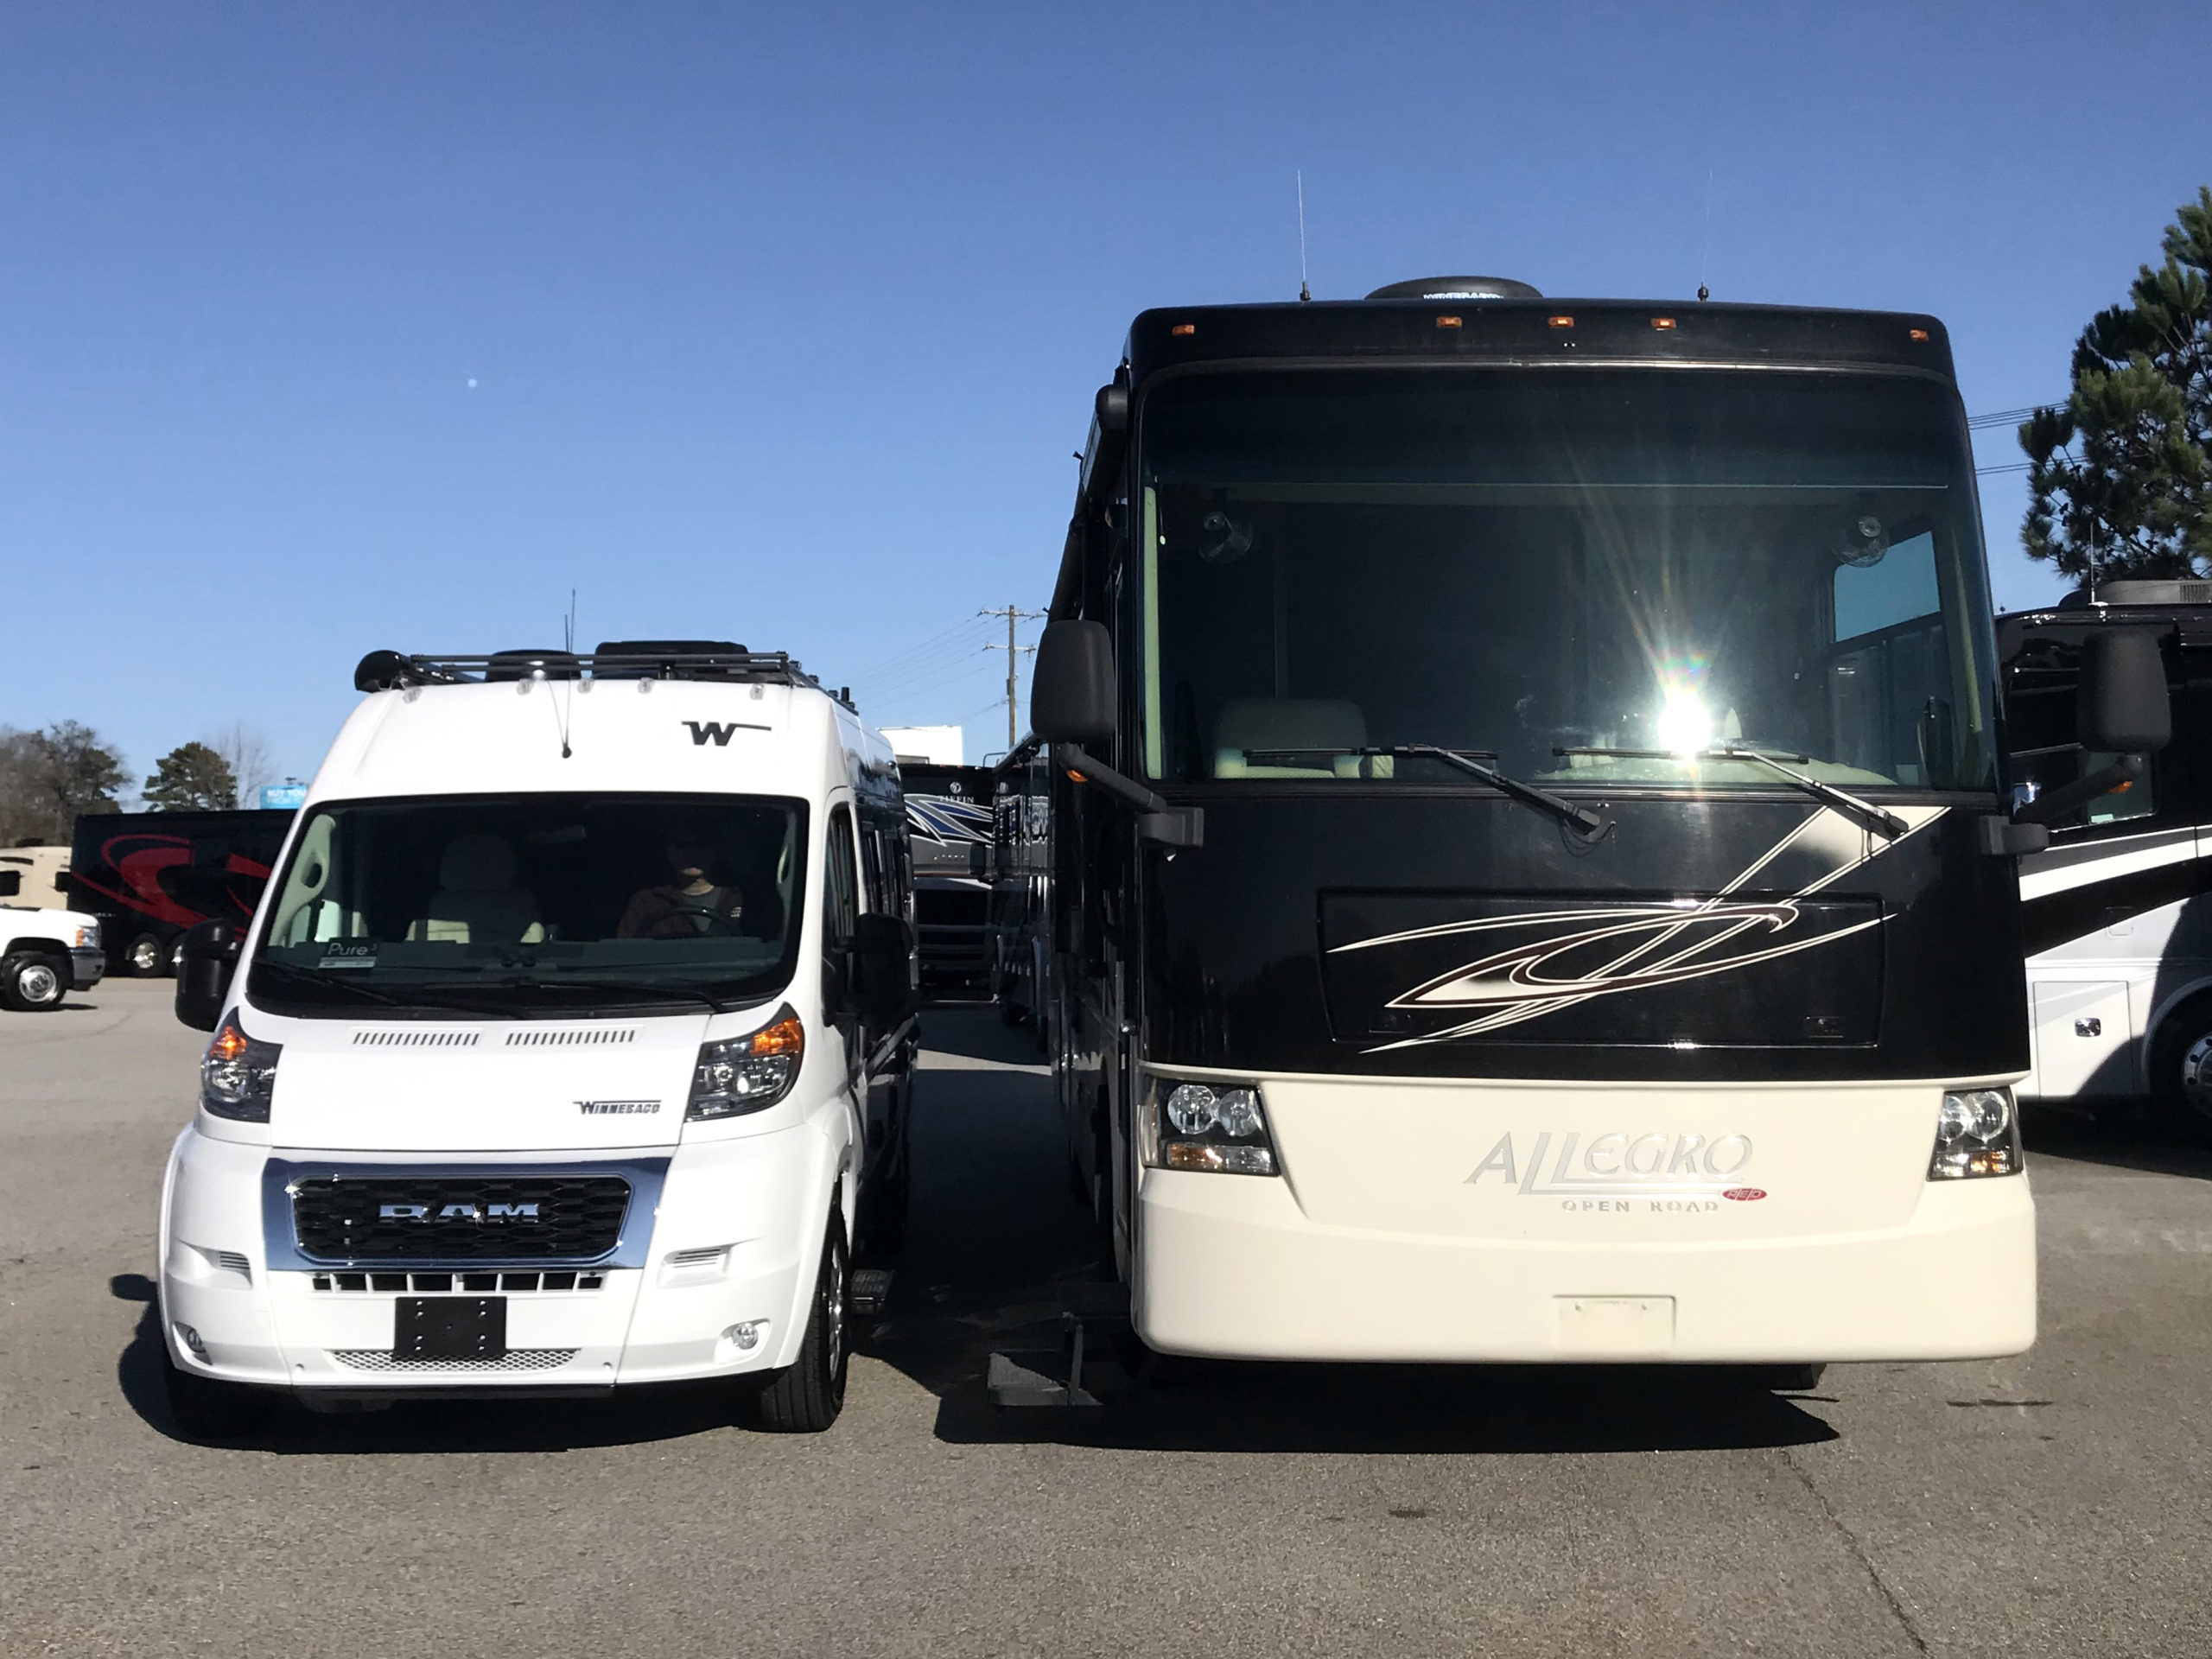 Downsizing RVs: From Class A to Van Life 3